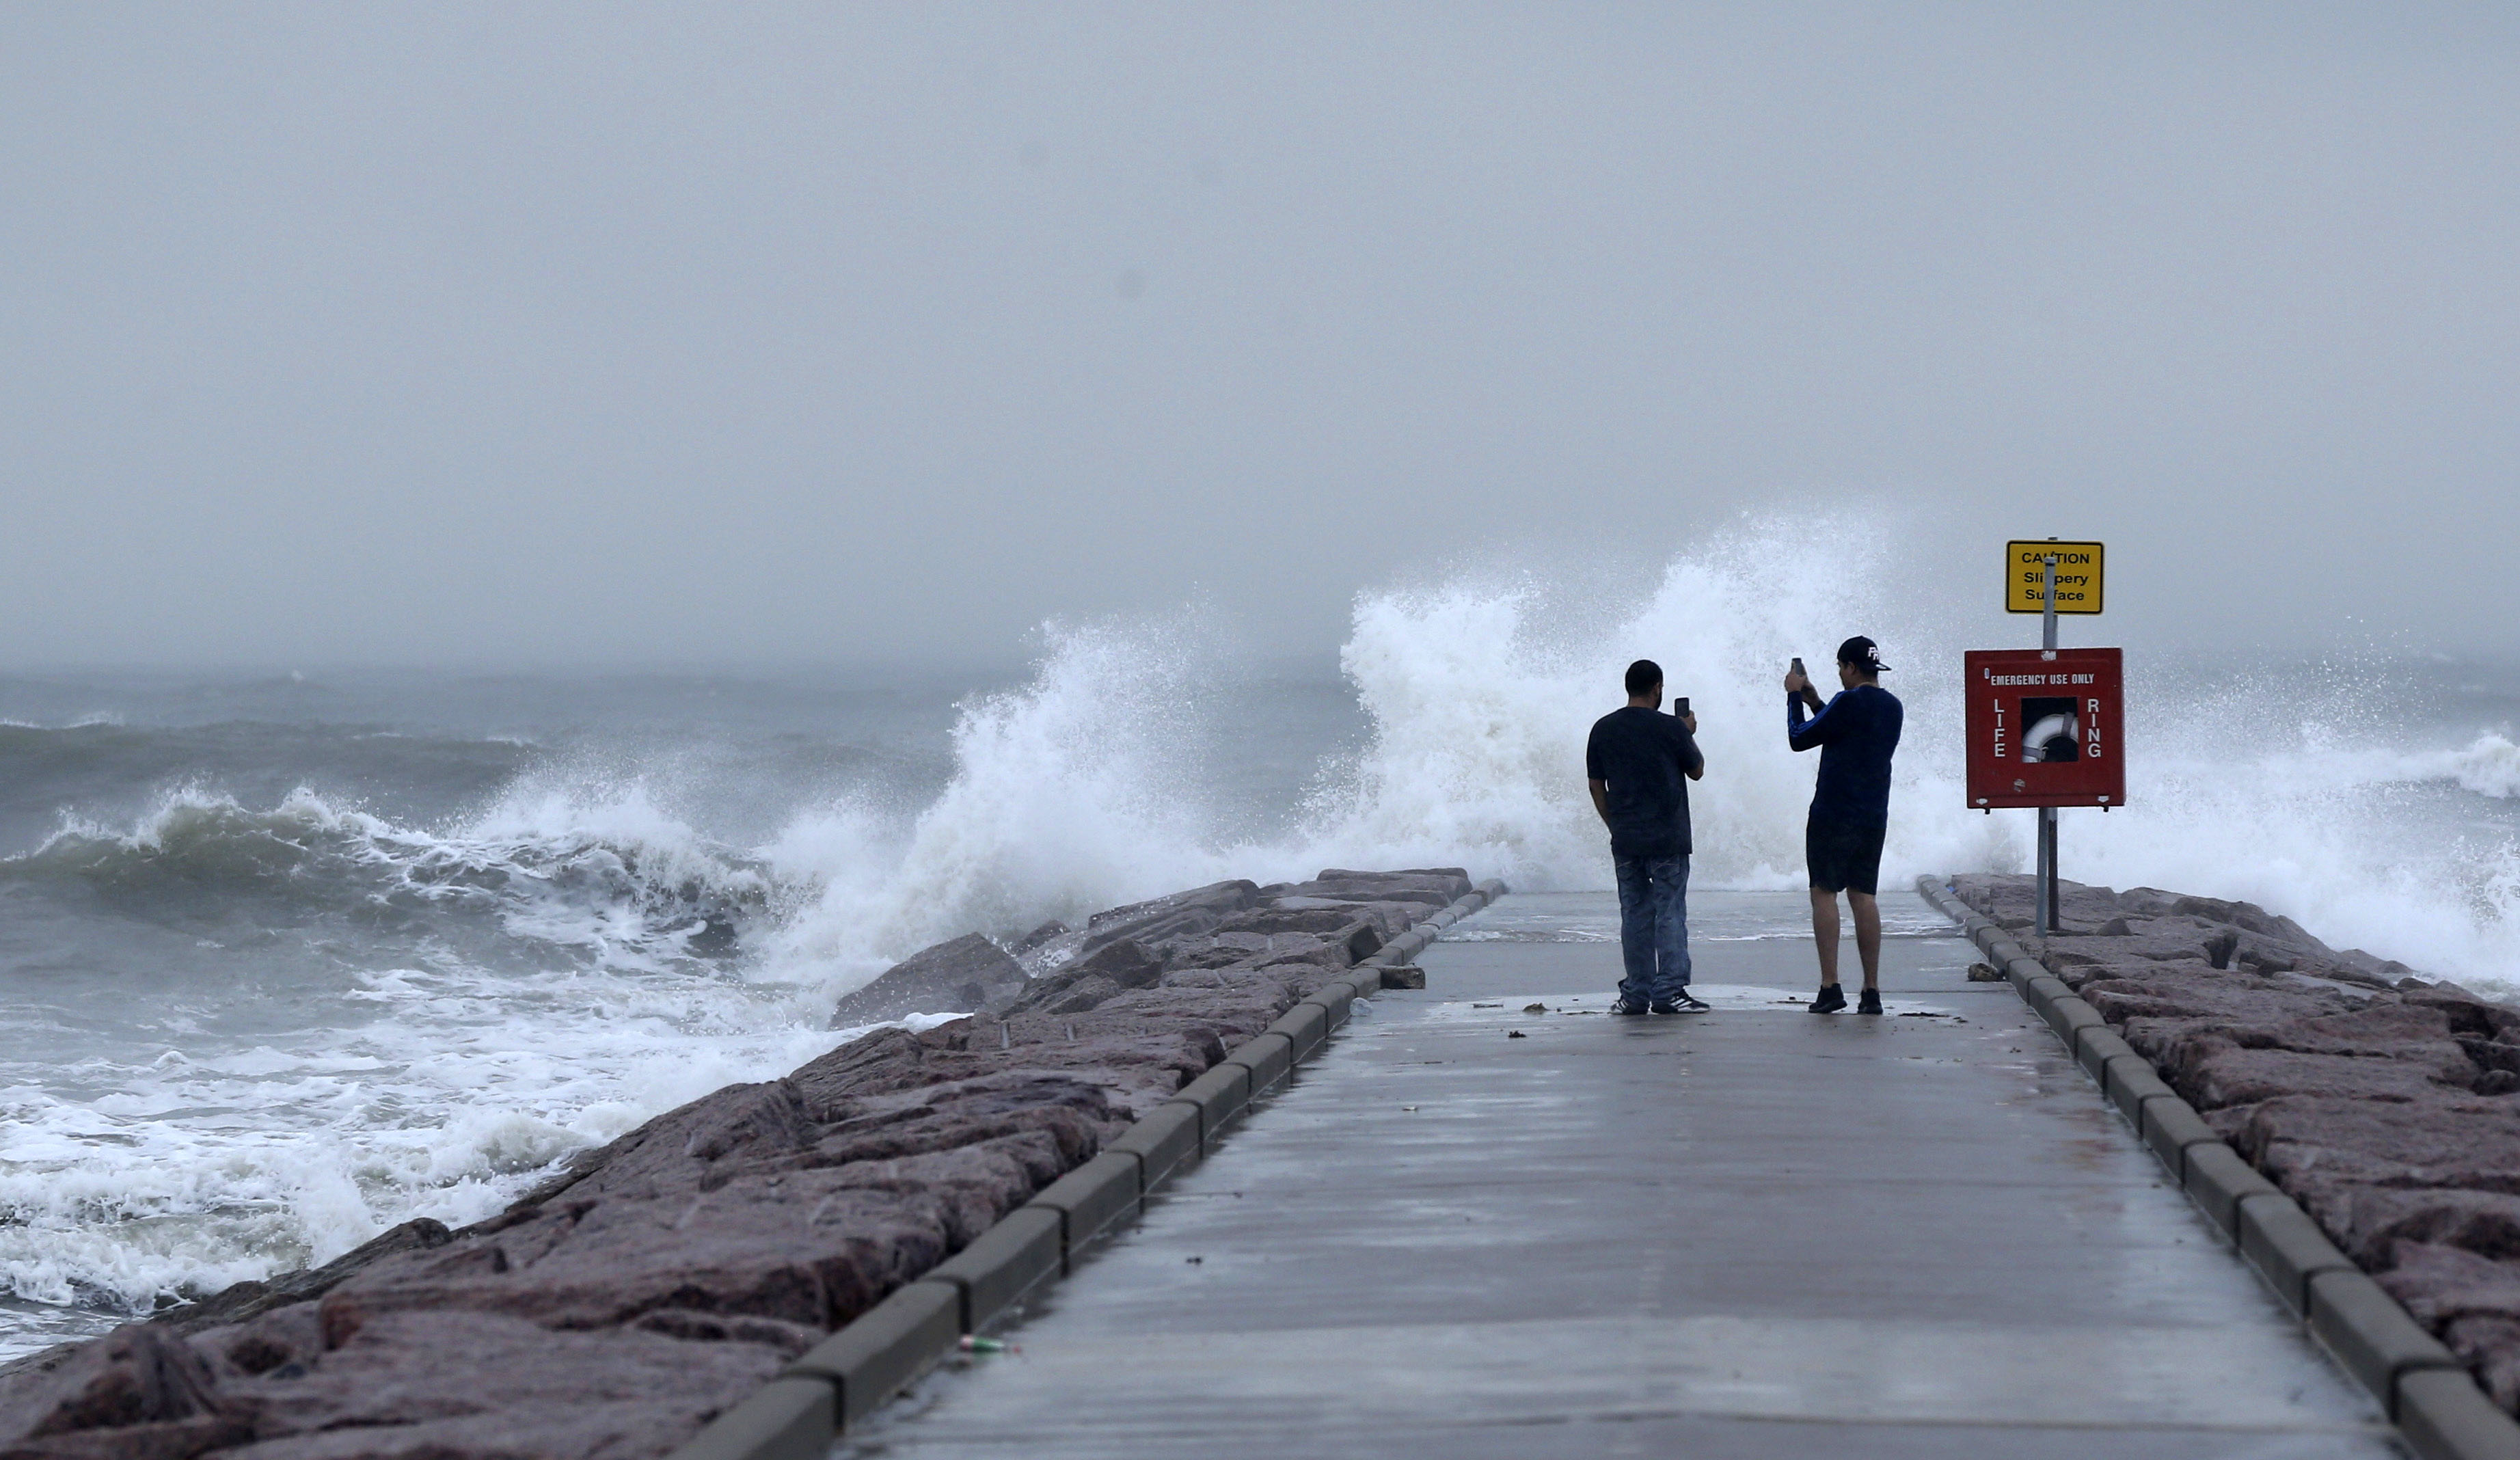 People photograph waves in Galveston, Texas, on August 26.